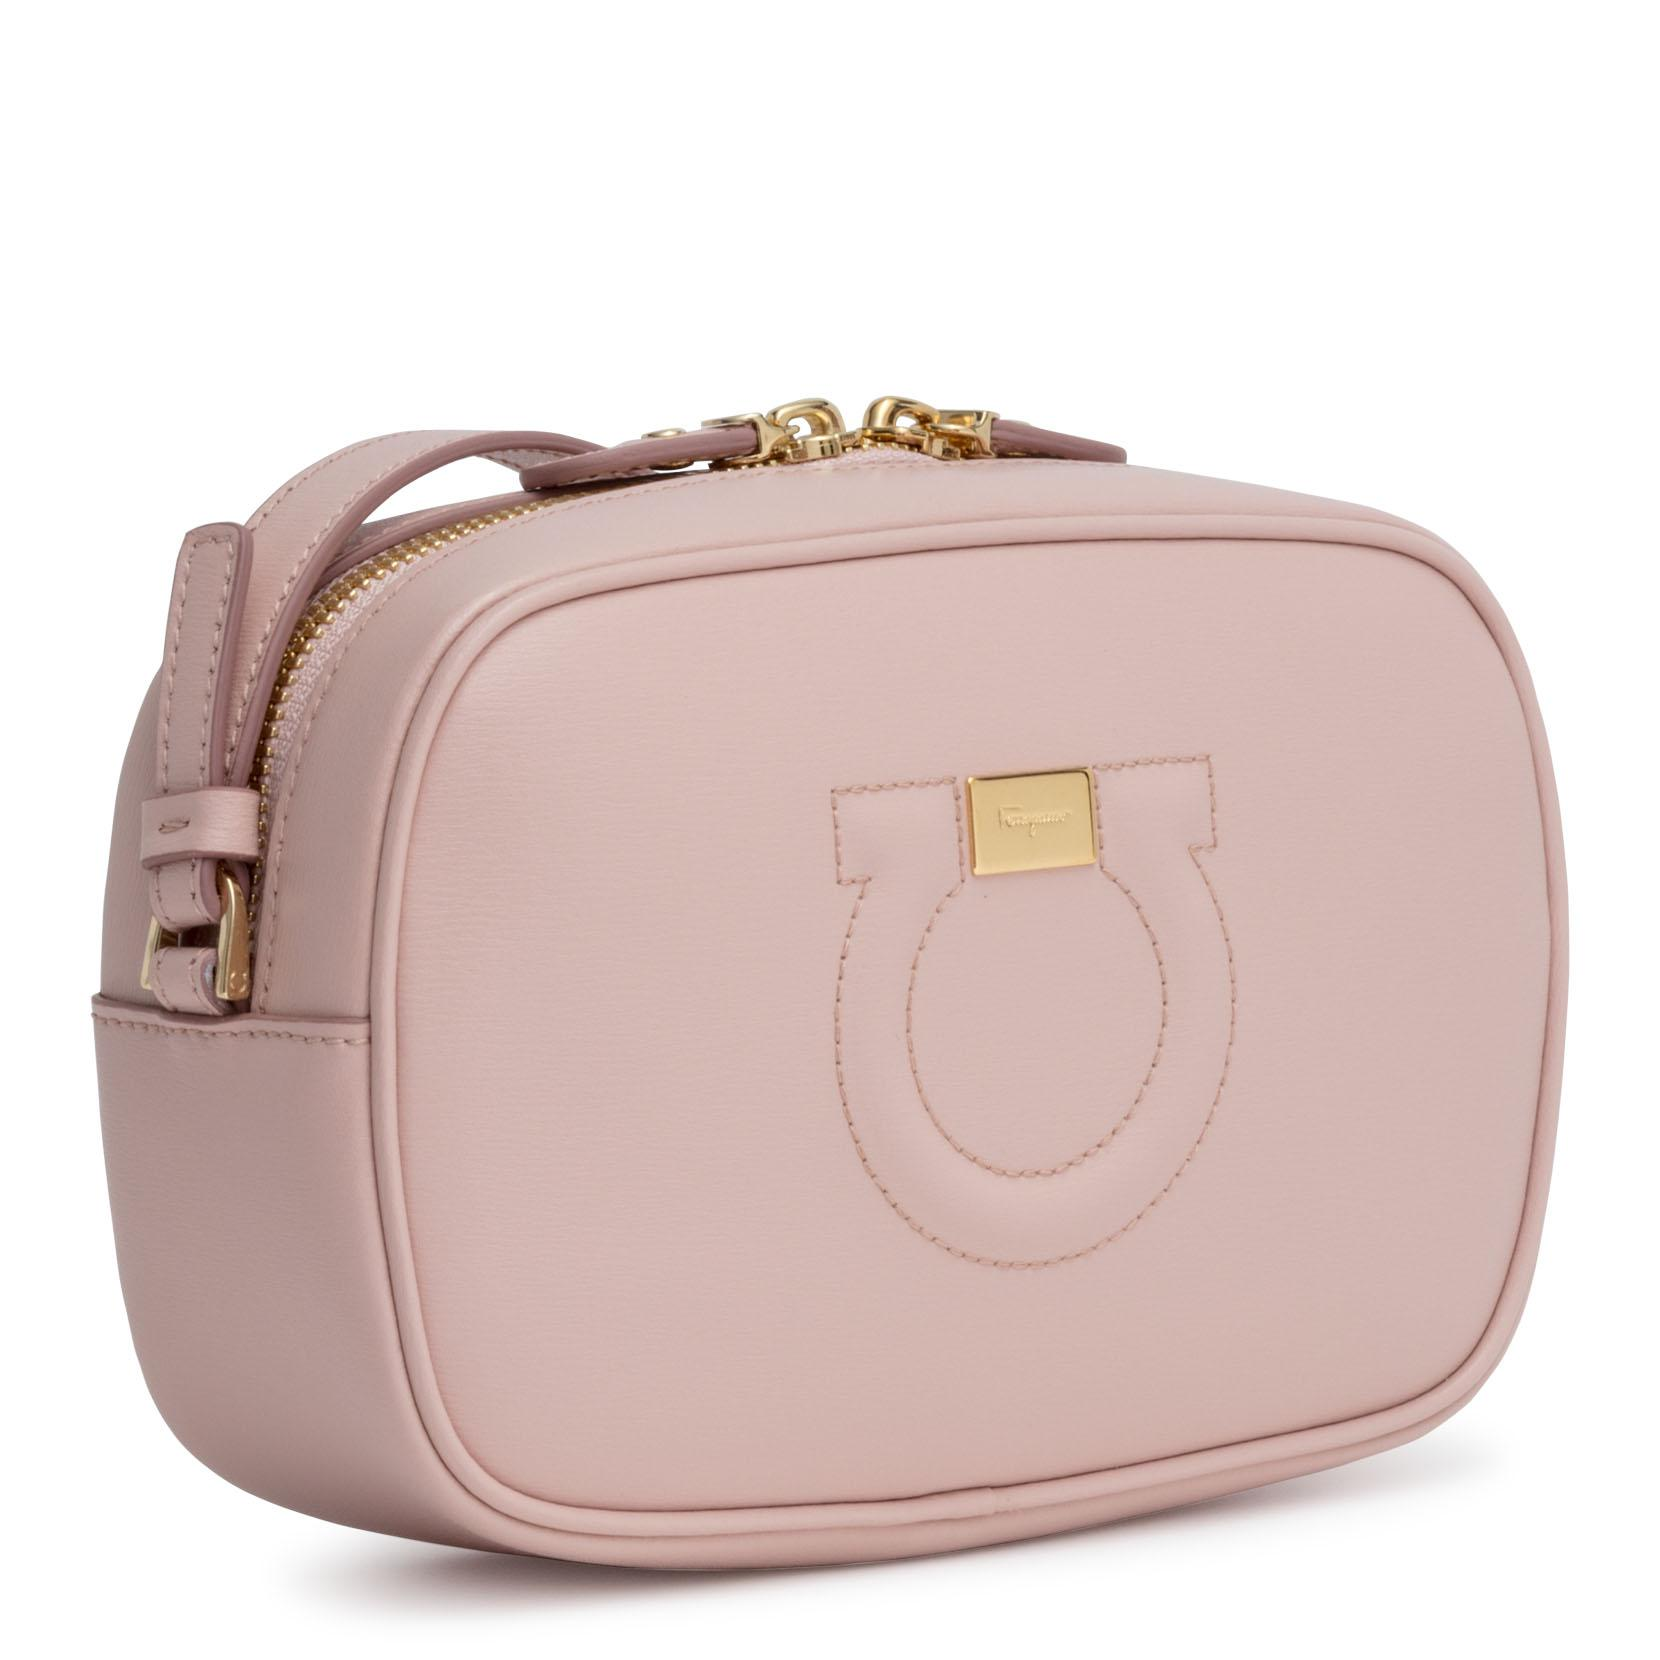 Ferragamo - Gancio City Light Pink Cross Body Bag - Lyst. View fullscreen 5d6cb8b9ee22e